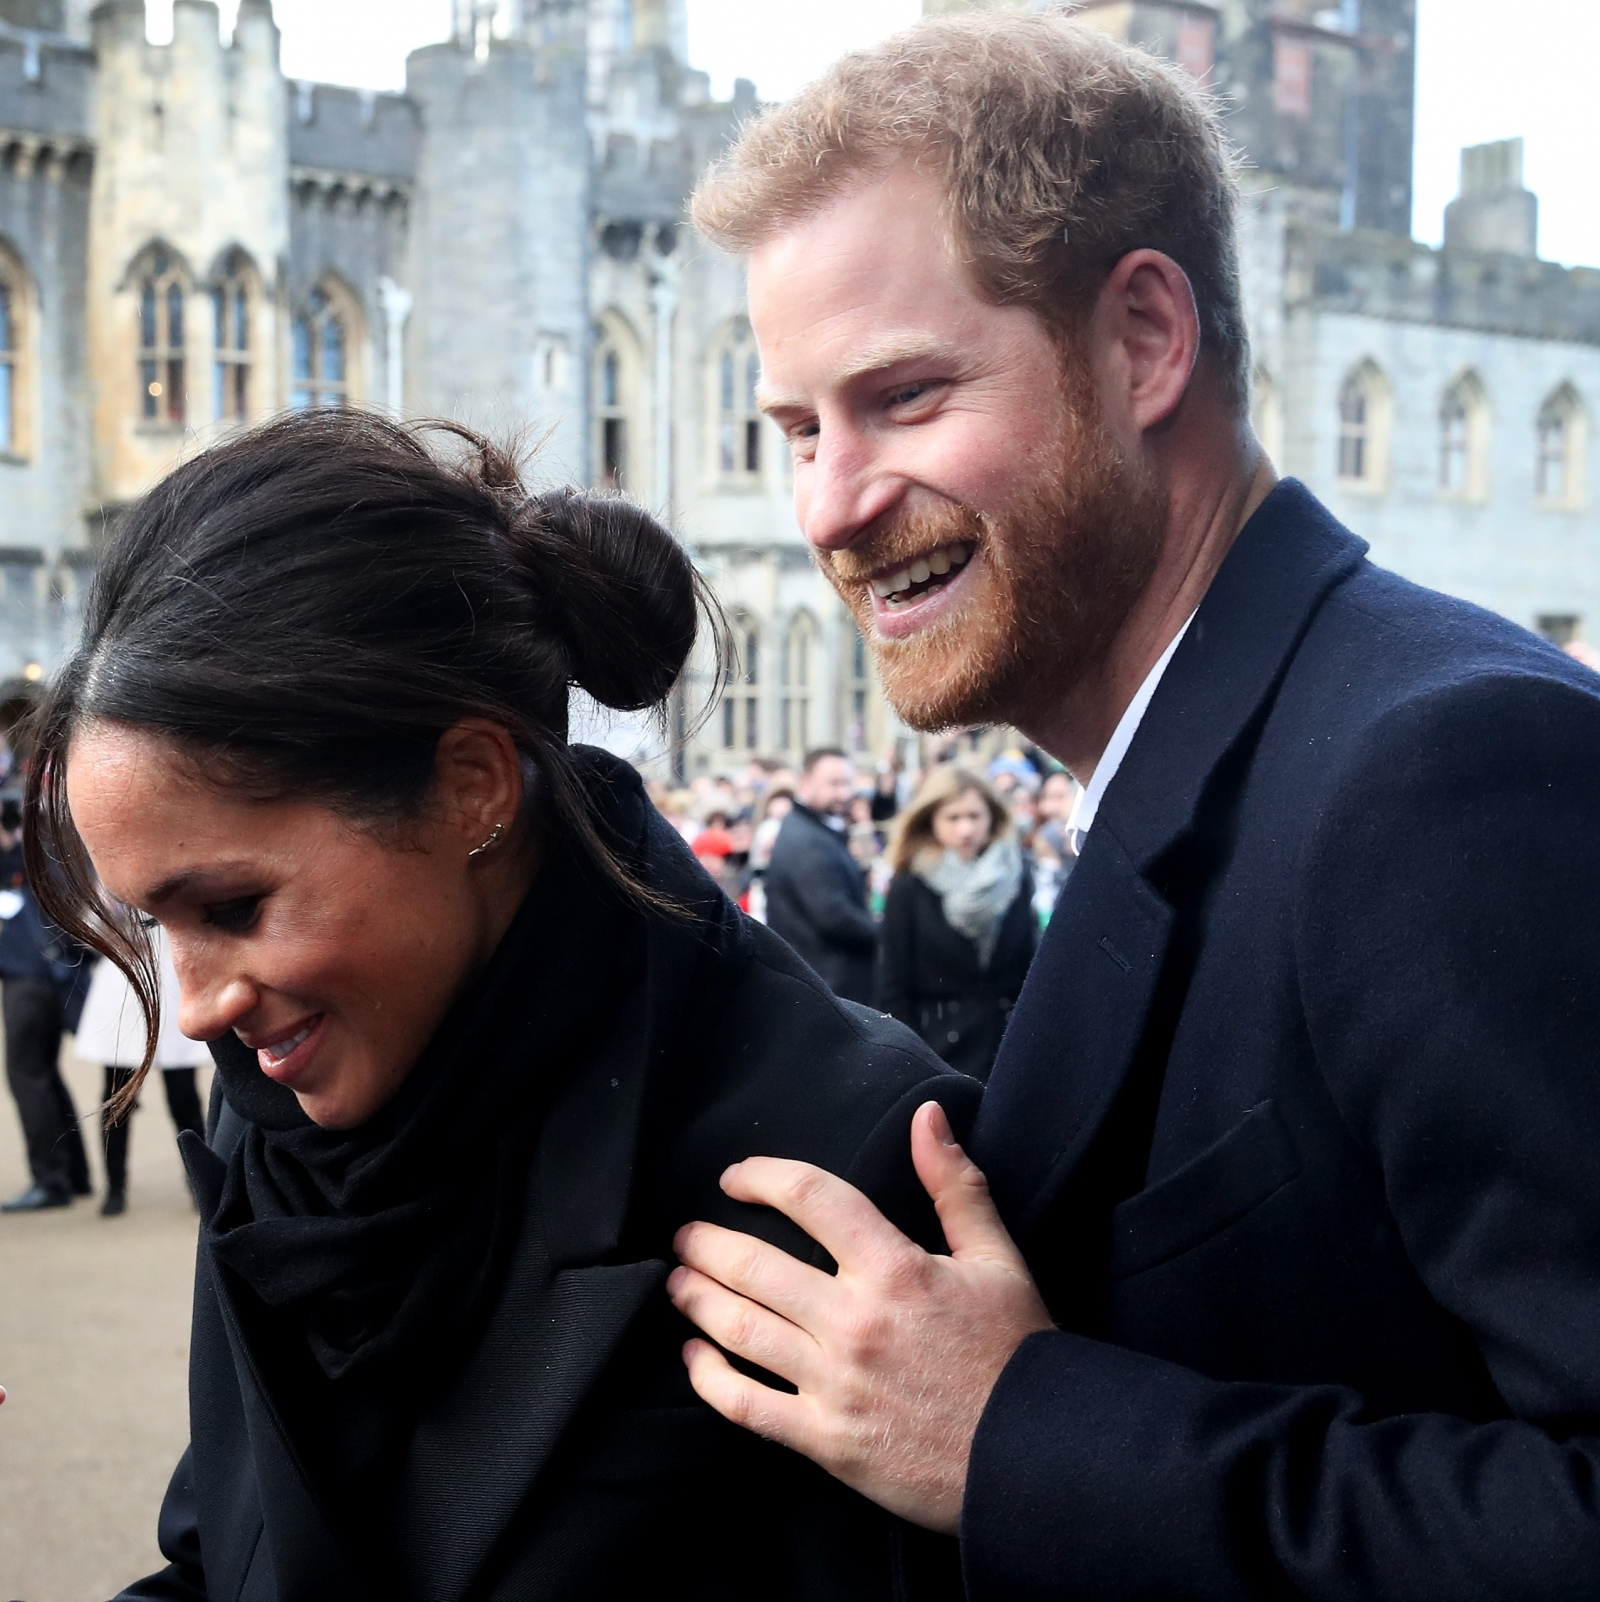 Prince Harry and Meghan Markle on royal tour to Wales